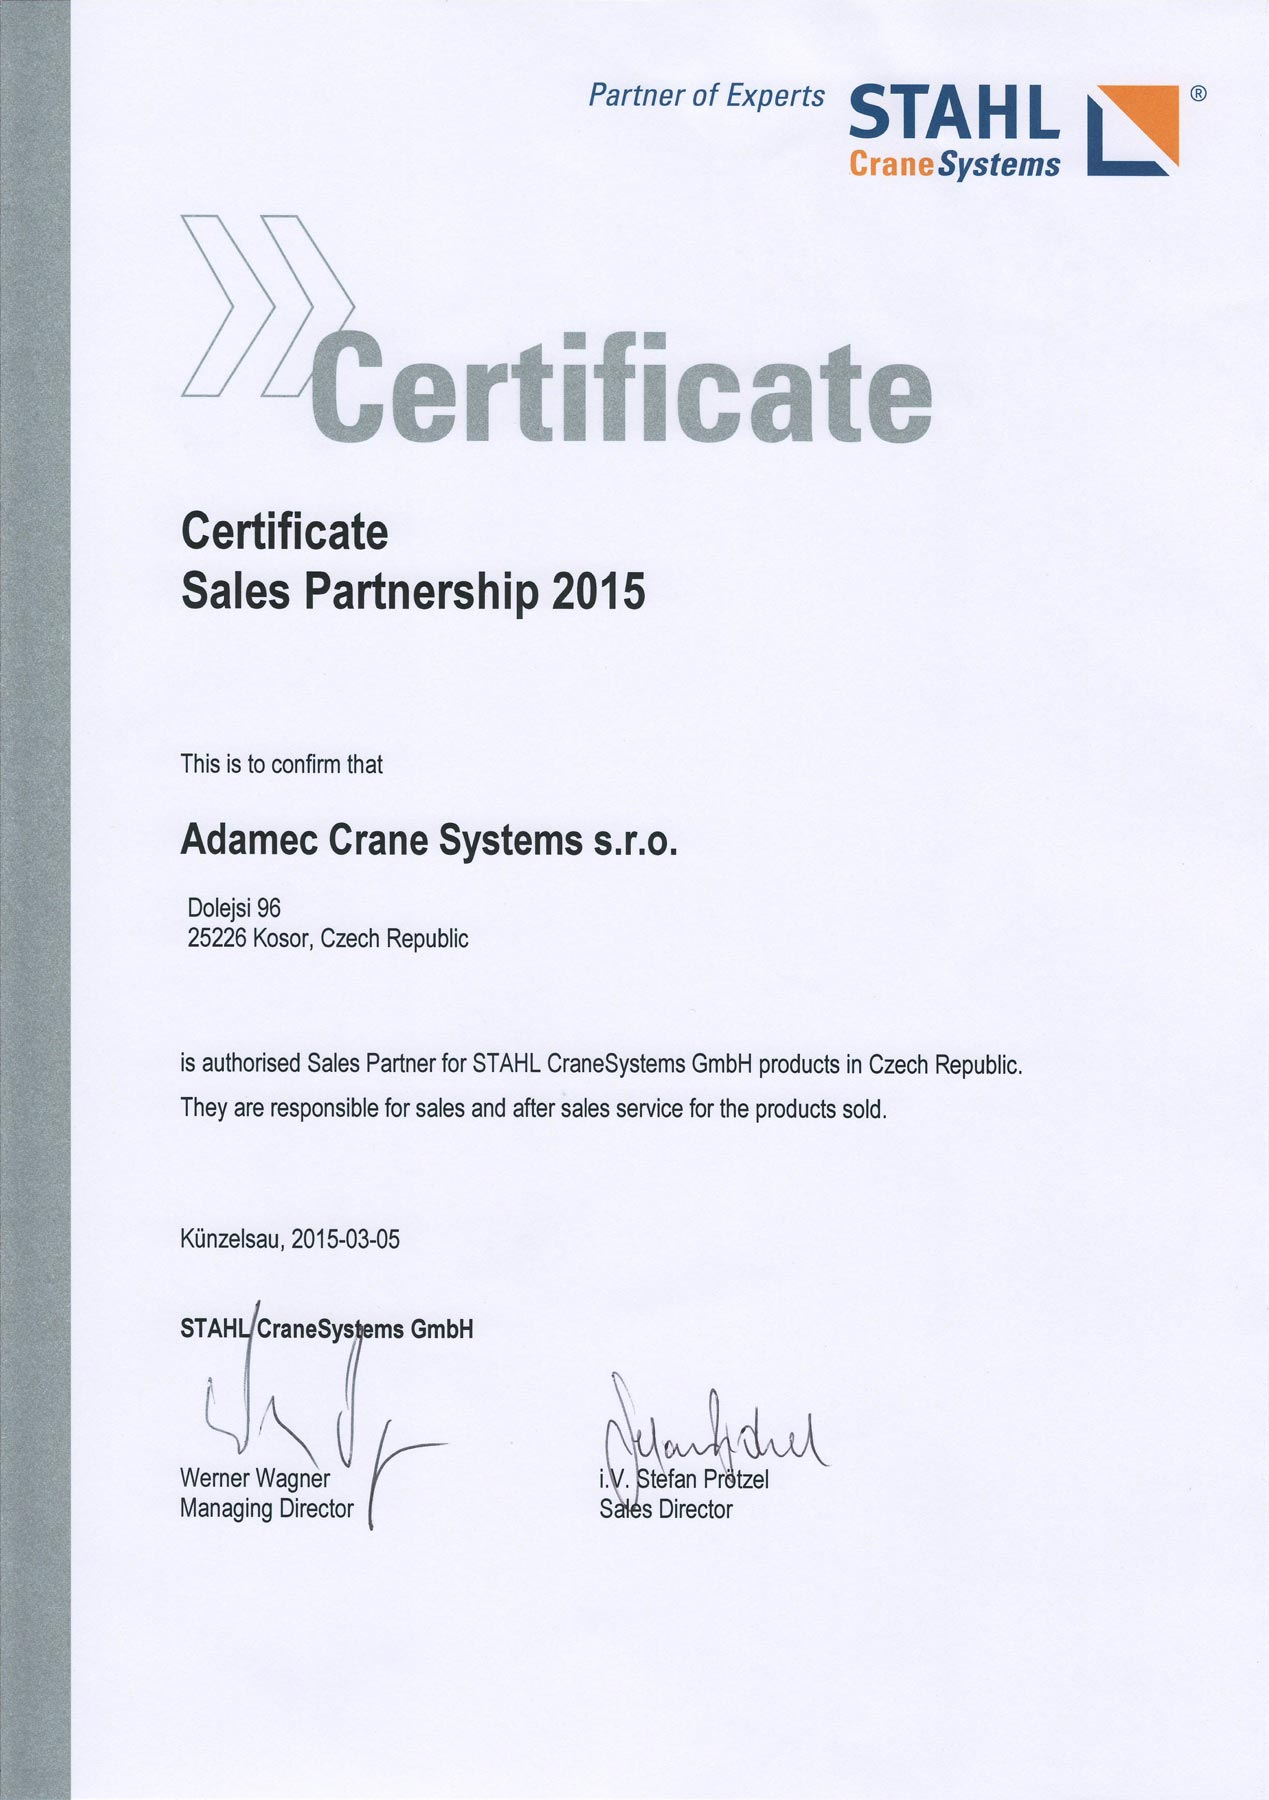 Stahl Crane Systems — Certificate of Sales Partnership 2015